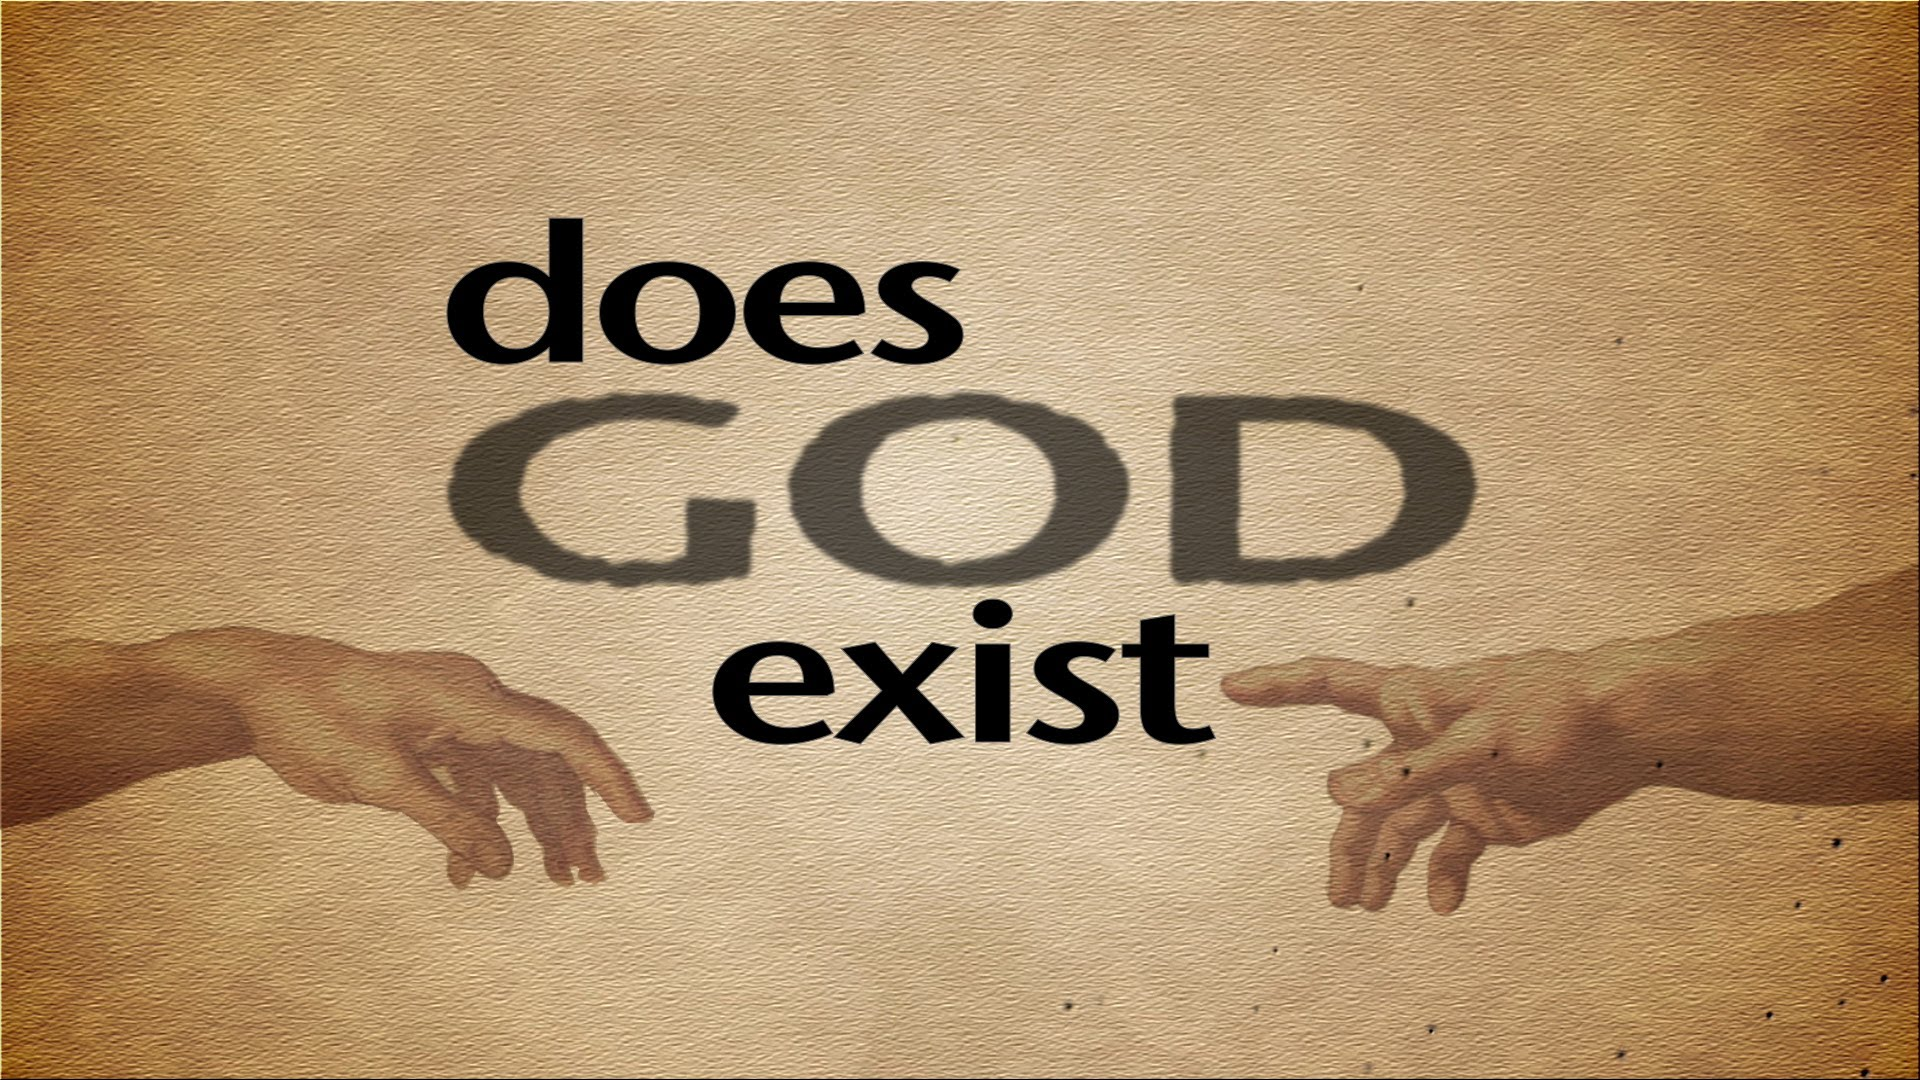 do god exist Why are we here what is our place in the universe what is the purpose of life the questions have been asked for centuries but they all revolve around what is perhaps the most fundamental question of all: does god exist.